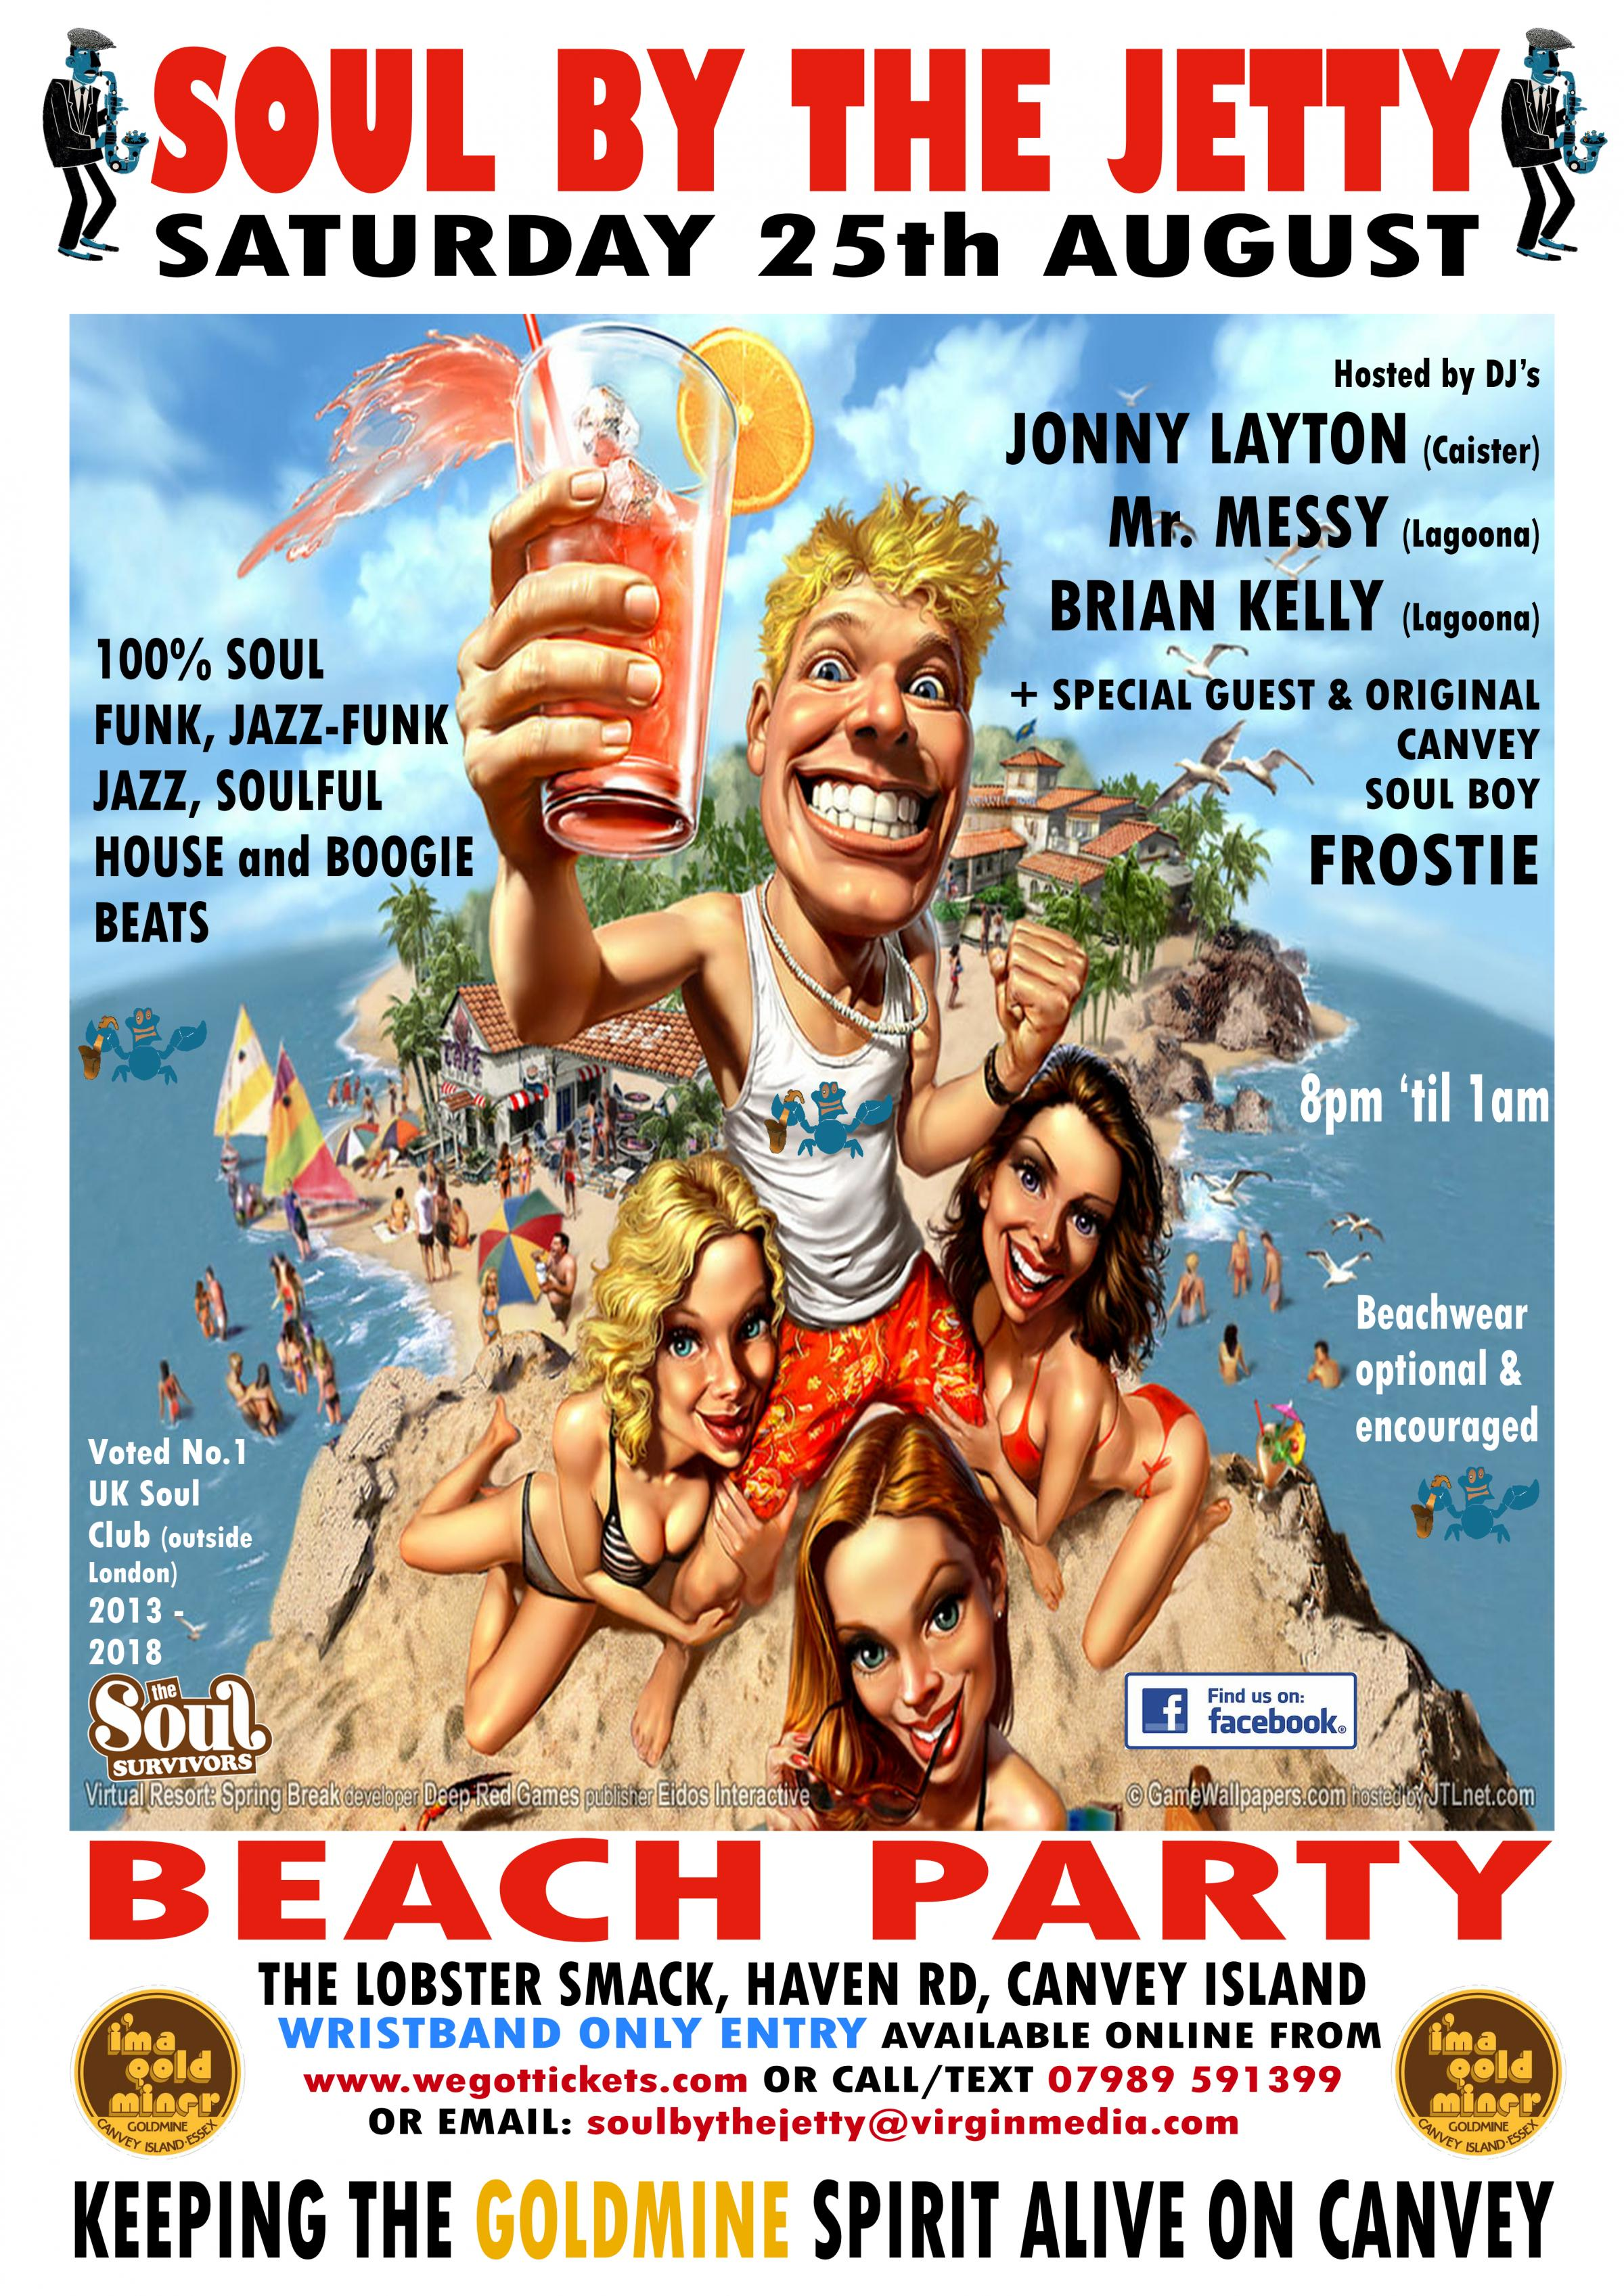 SOUL BY THE JETTY - August BEACH PARTY